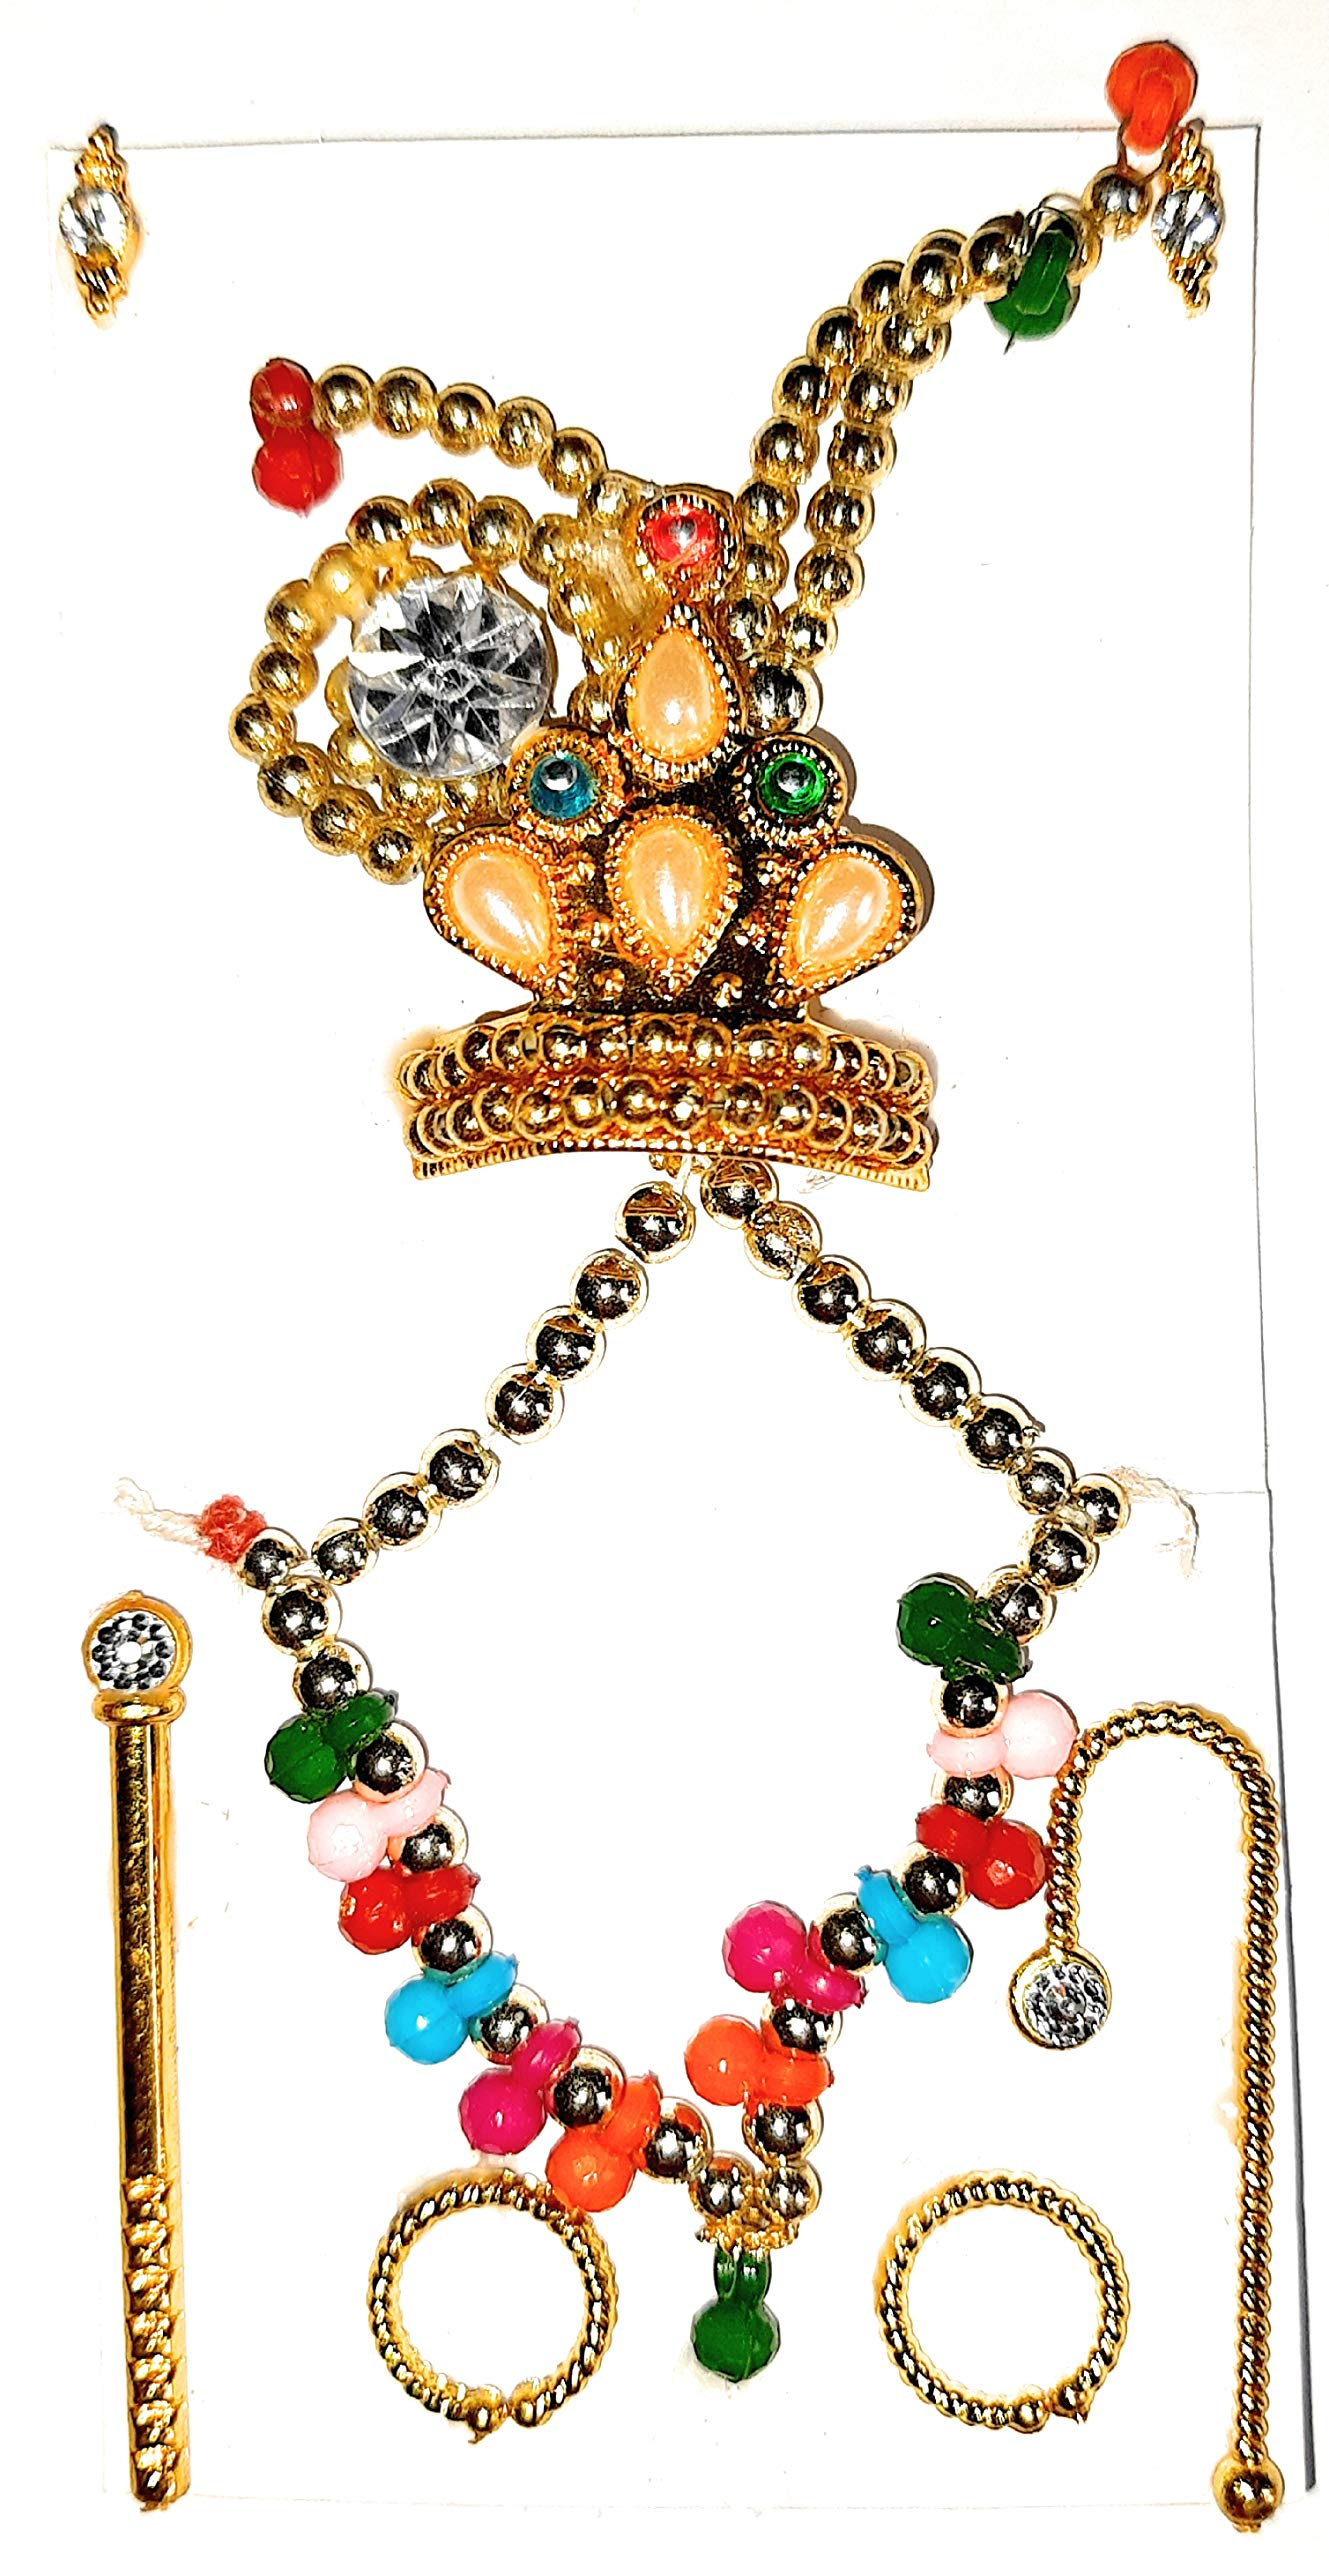 hema Pearl Multicolour Jewellery and Accessories for Ladoo Gopal Ji